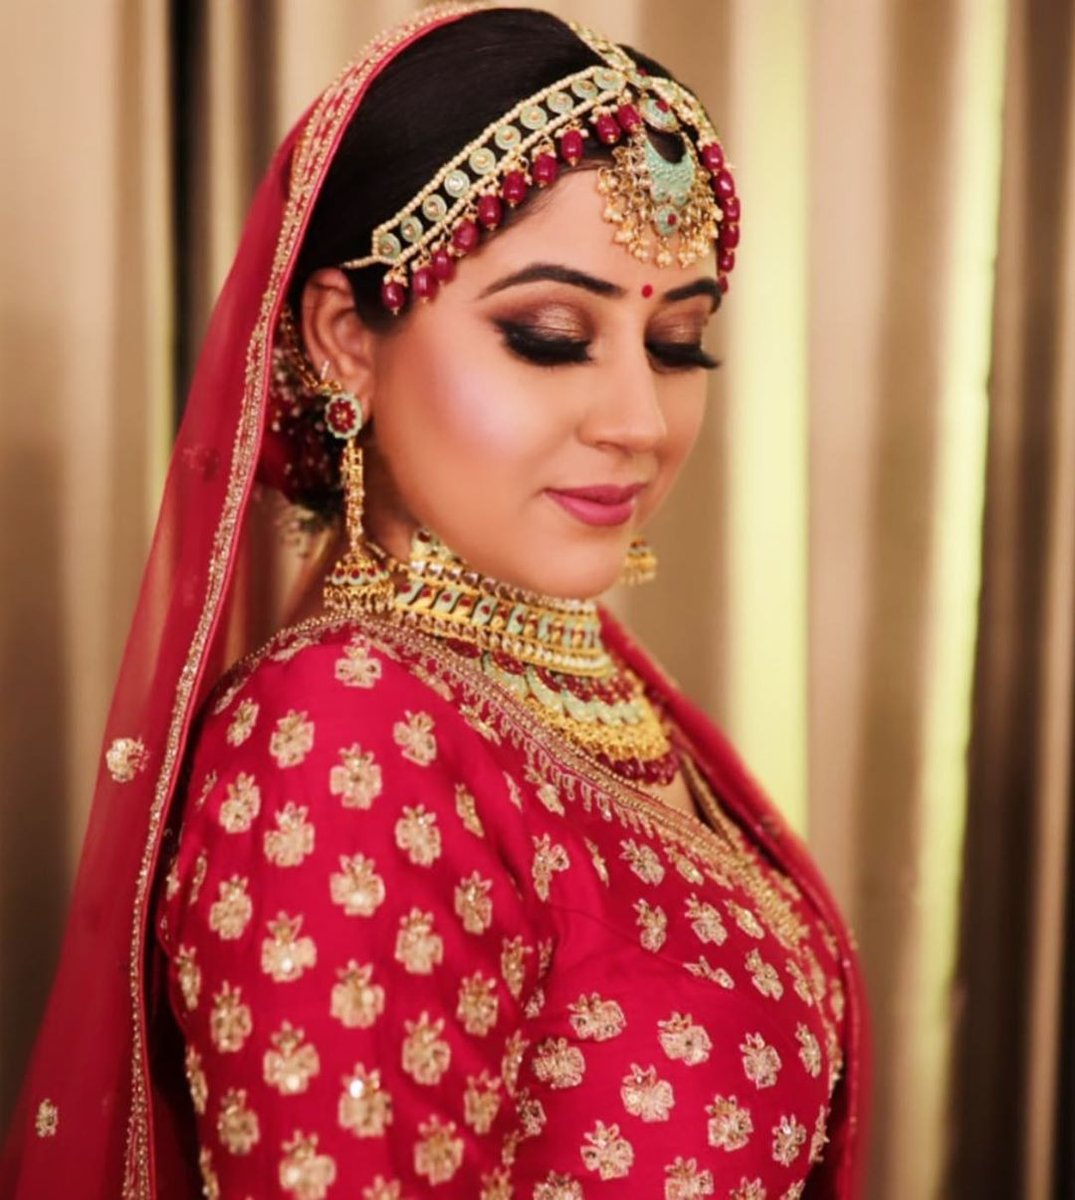 Beautiful inside out!  http://www.sohnijuneja.com  #makeupbysohnij #mua #makeupartist #makeup #bride #weddingmakeup #bridalmakeup #bridallook #bridalmua #weddingmua #beautifulbride #gorgeousbride #bride2020 #bridetobe #indianbride #weddingmua #brideoftheday #popxowedding #shaadisaga pic.twitter.com/60YMeFnQpD